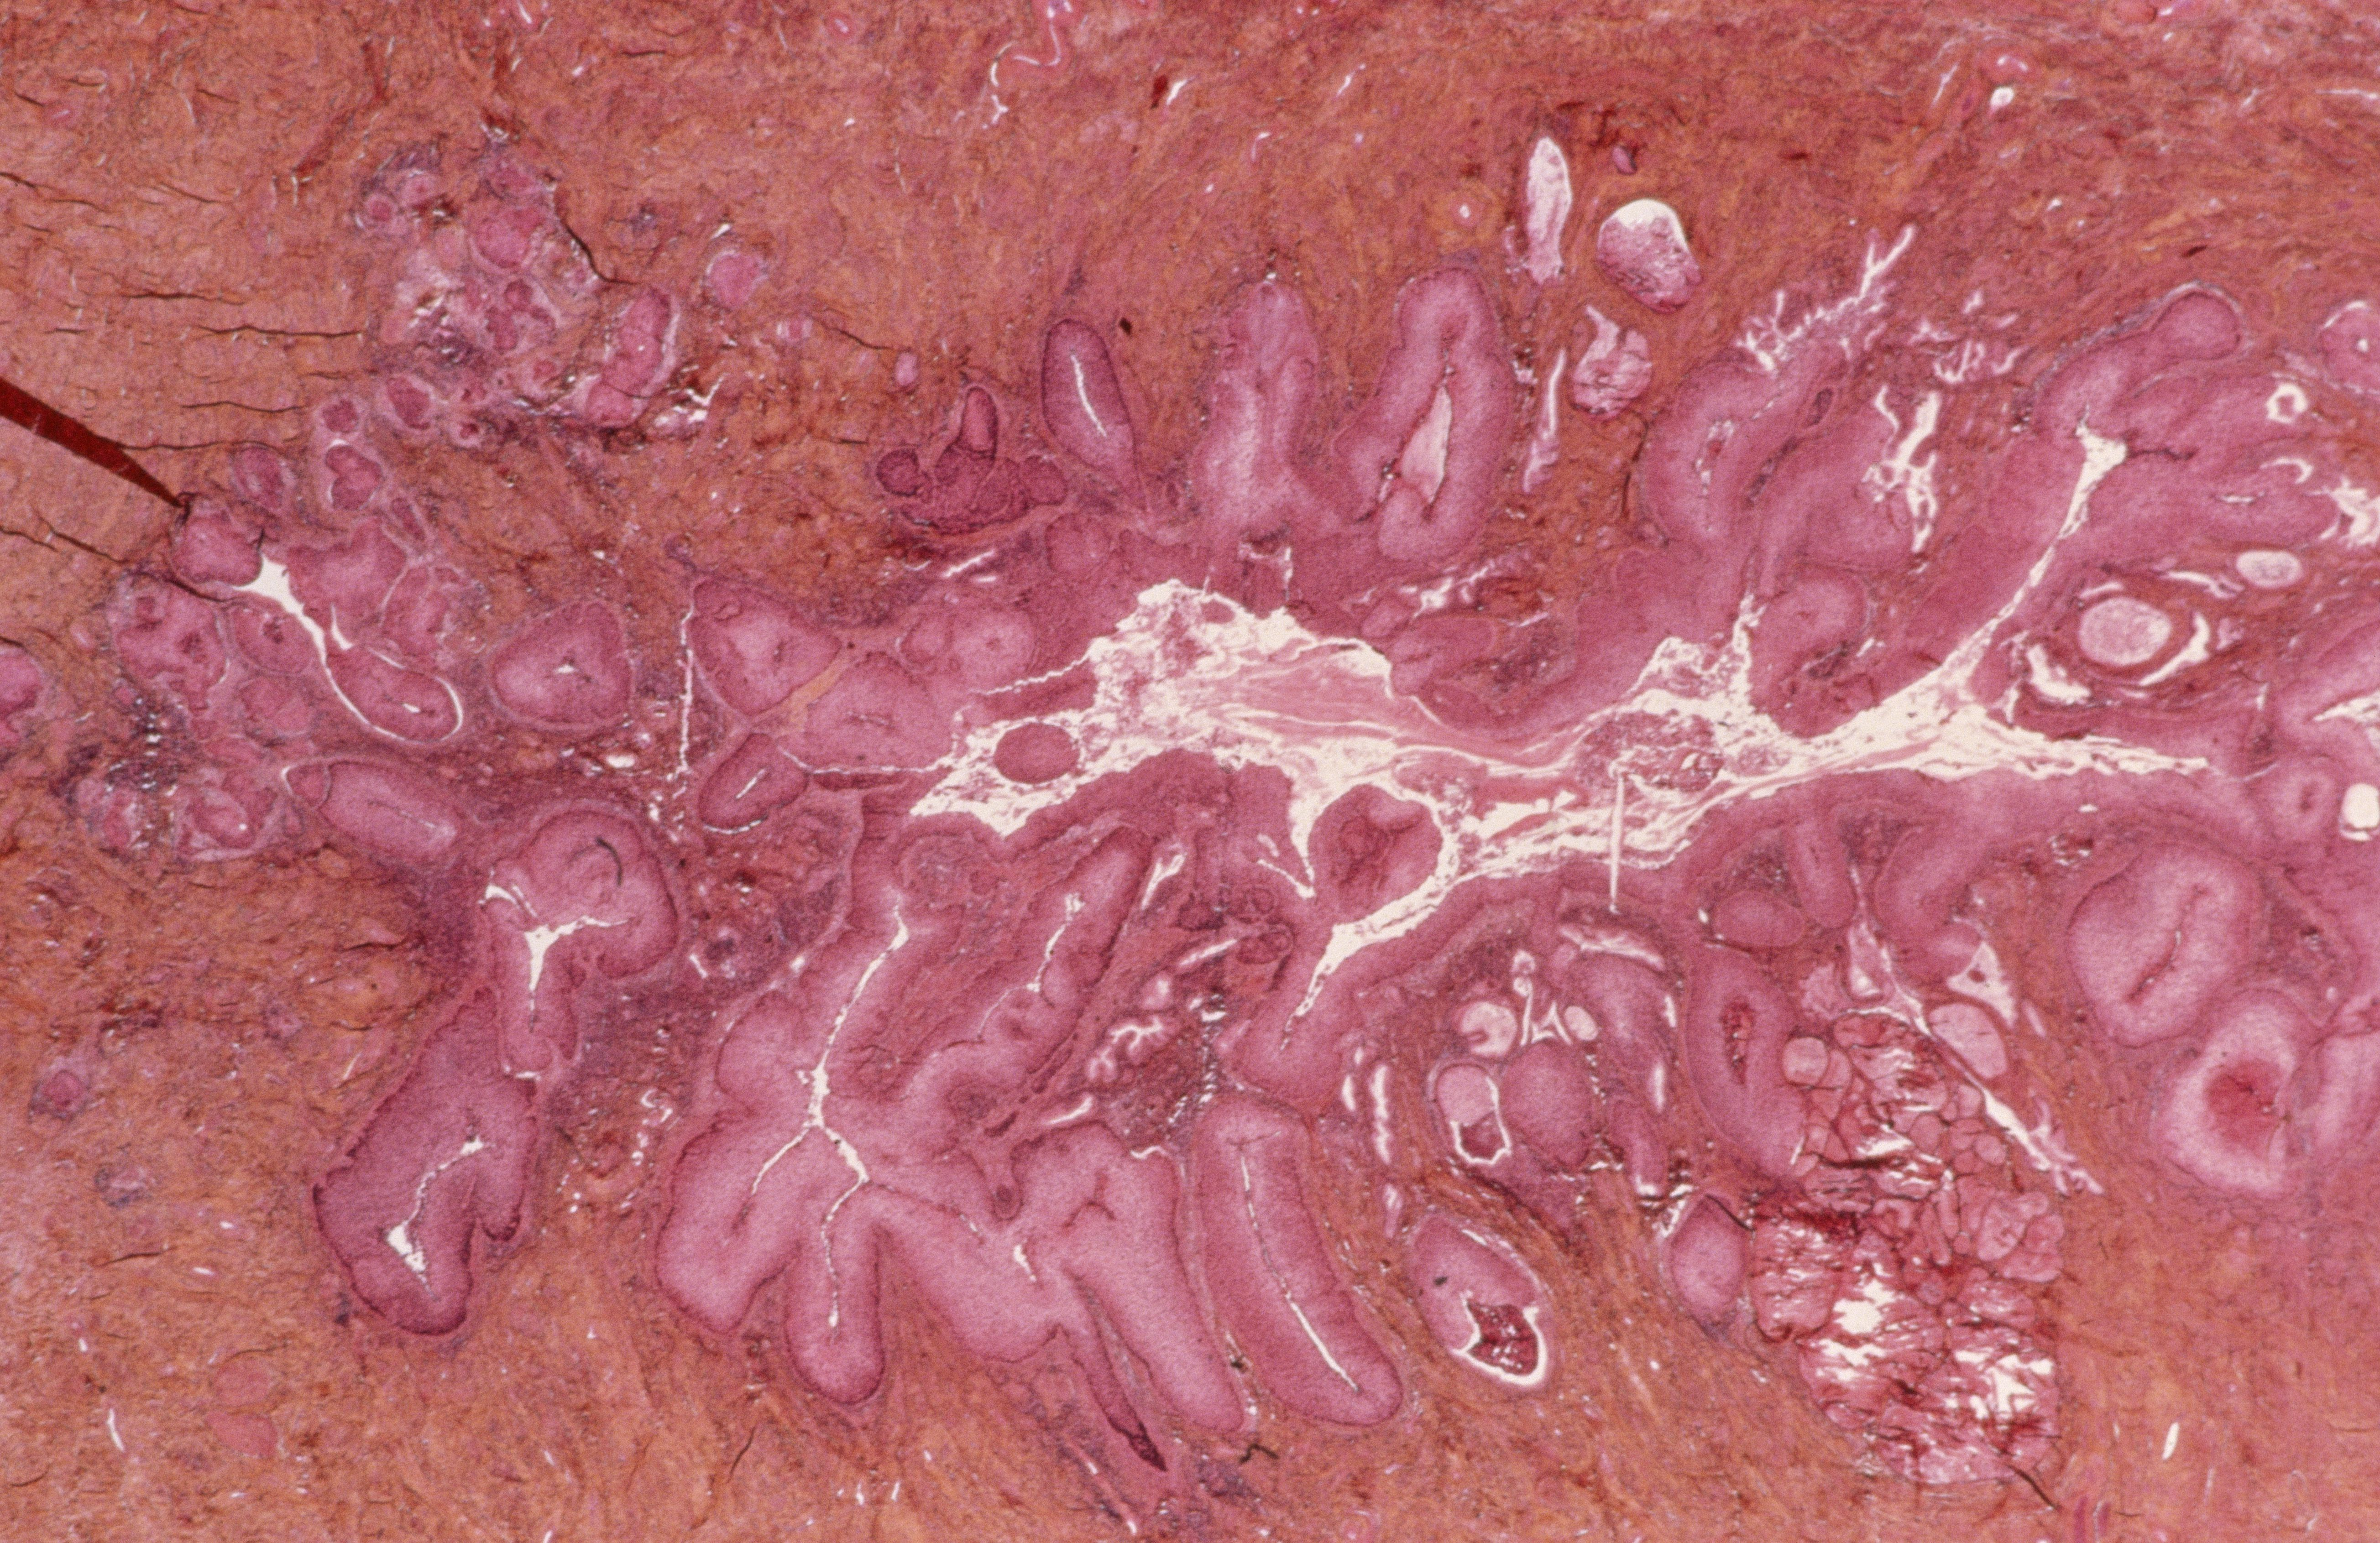 What to Know About Cervical Intraepithelial Neoplasia